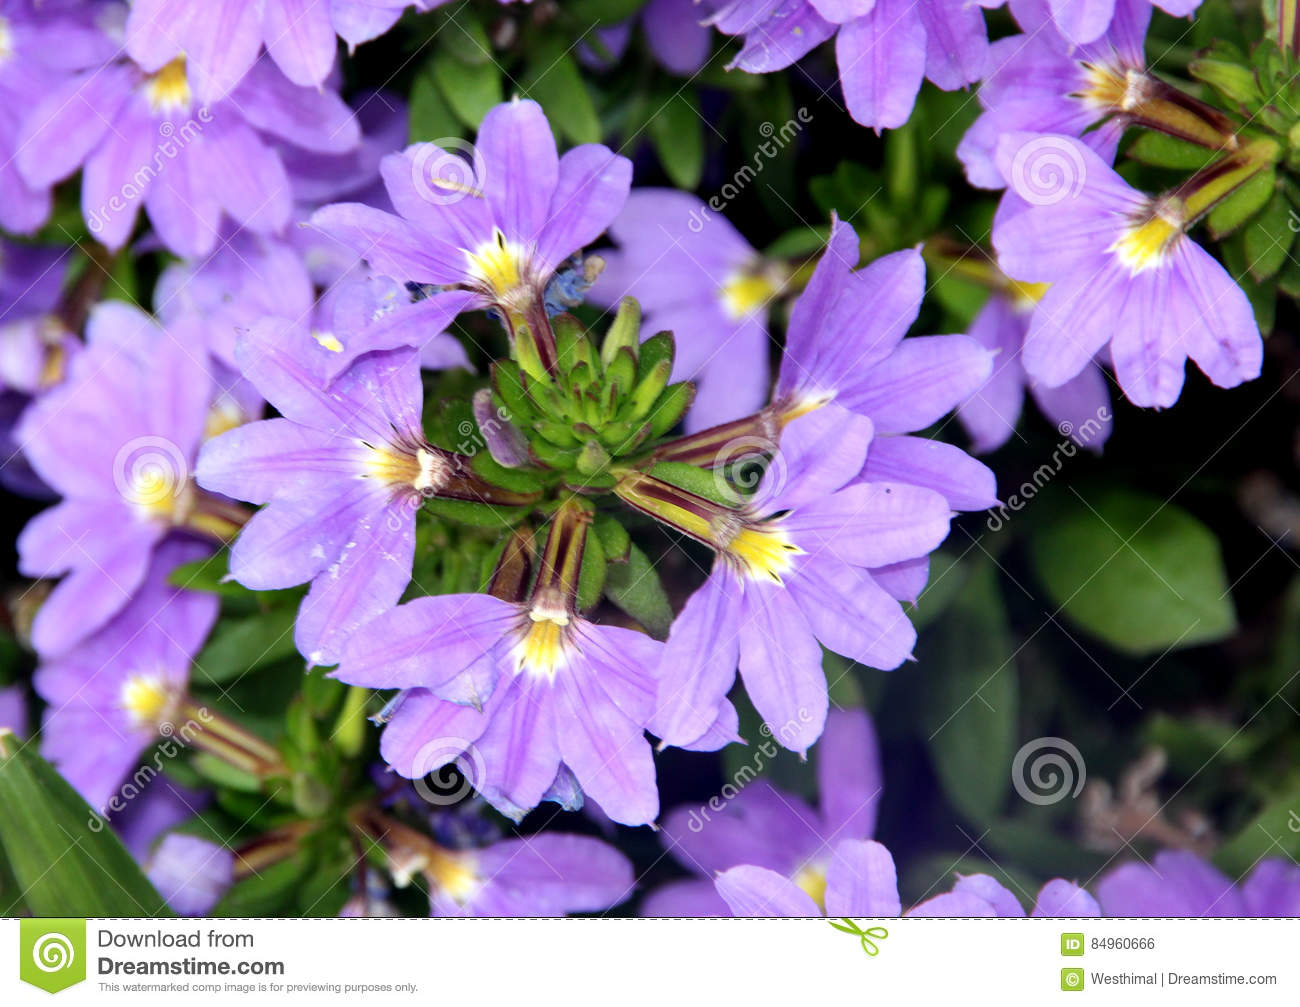 Scaevola aemula aussie crawl fan flower stock photo image of scaevola aemula aussie crawl fan flower hardy mound forming ground cover with blue mauve fan shaped flowers with white center izmirmasajfo